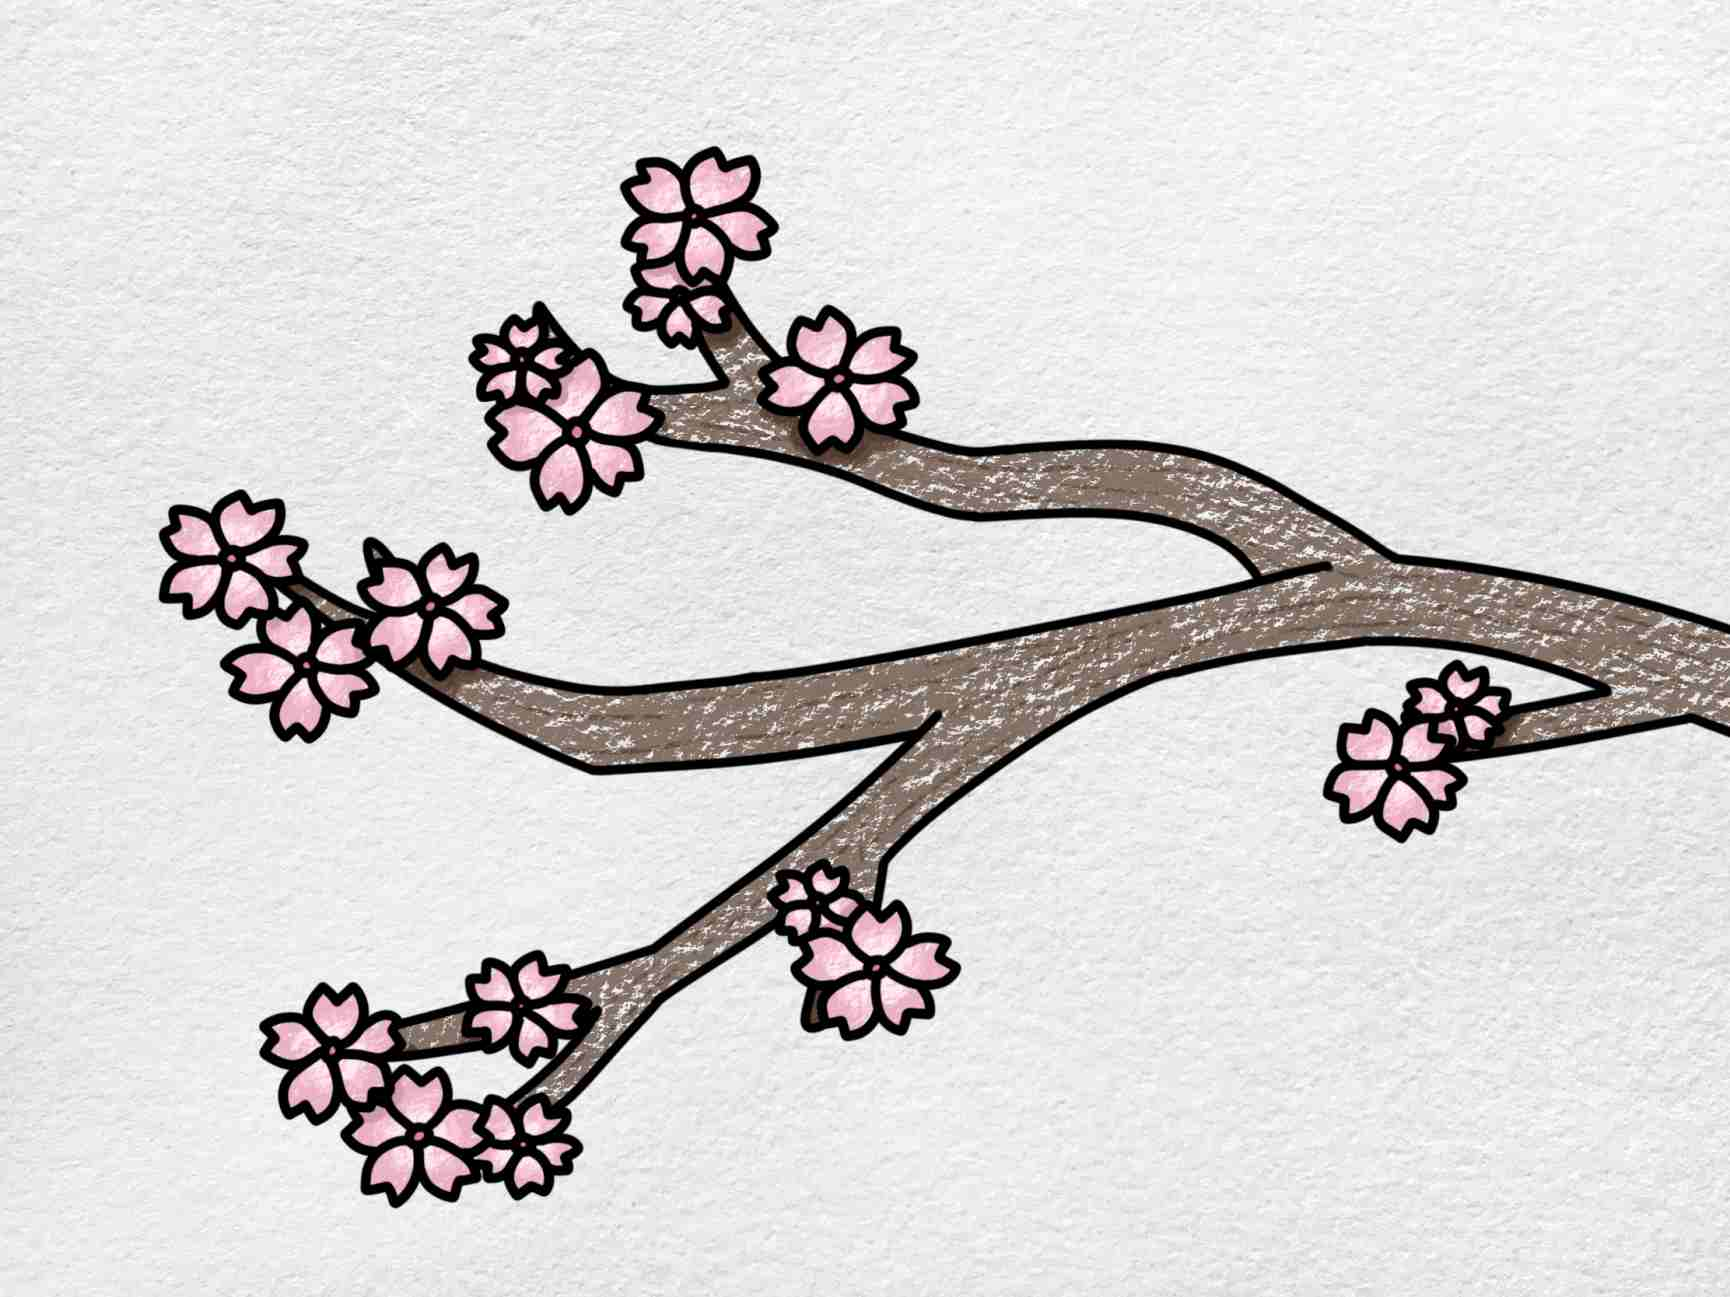 Cherry Blossom Drawing: Step 6